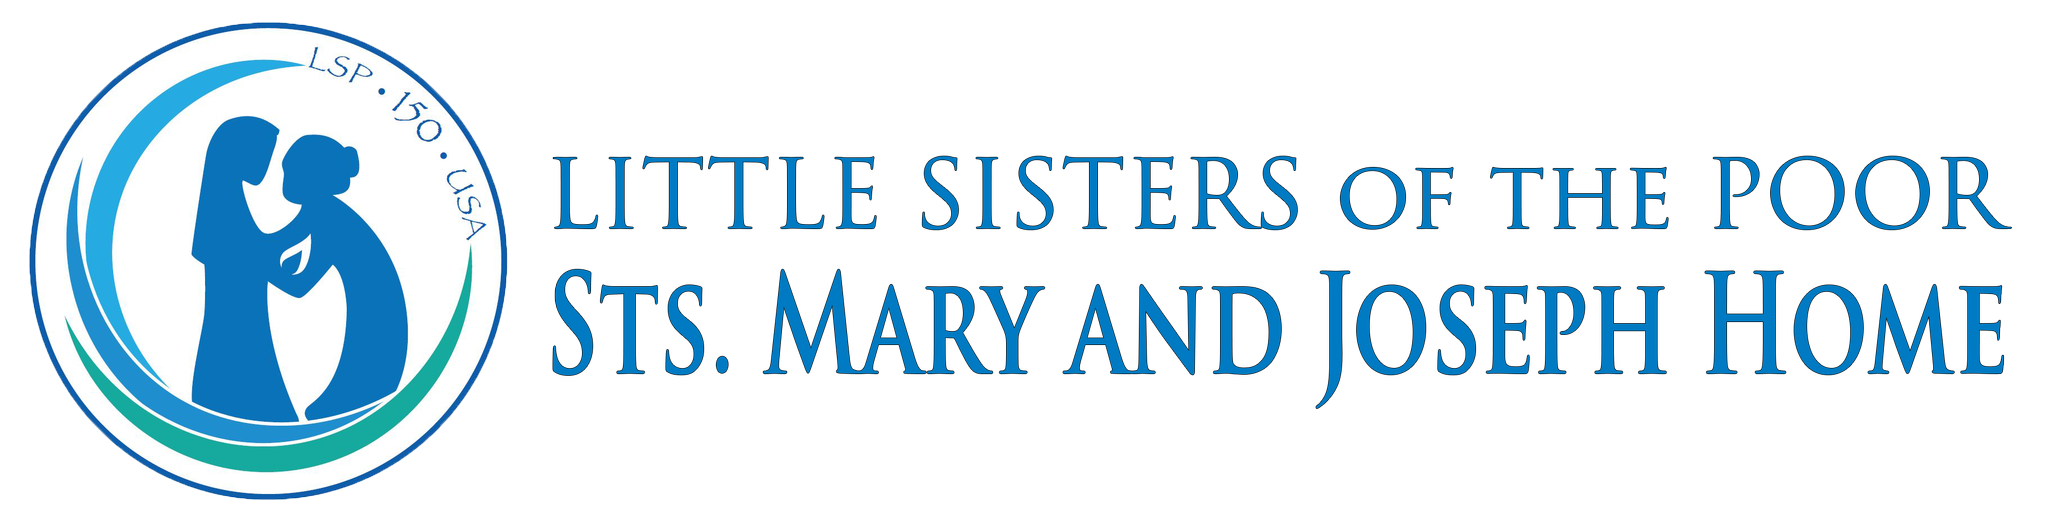 Little Sisters of the Poor Cleveland